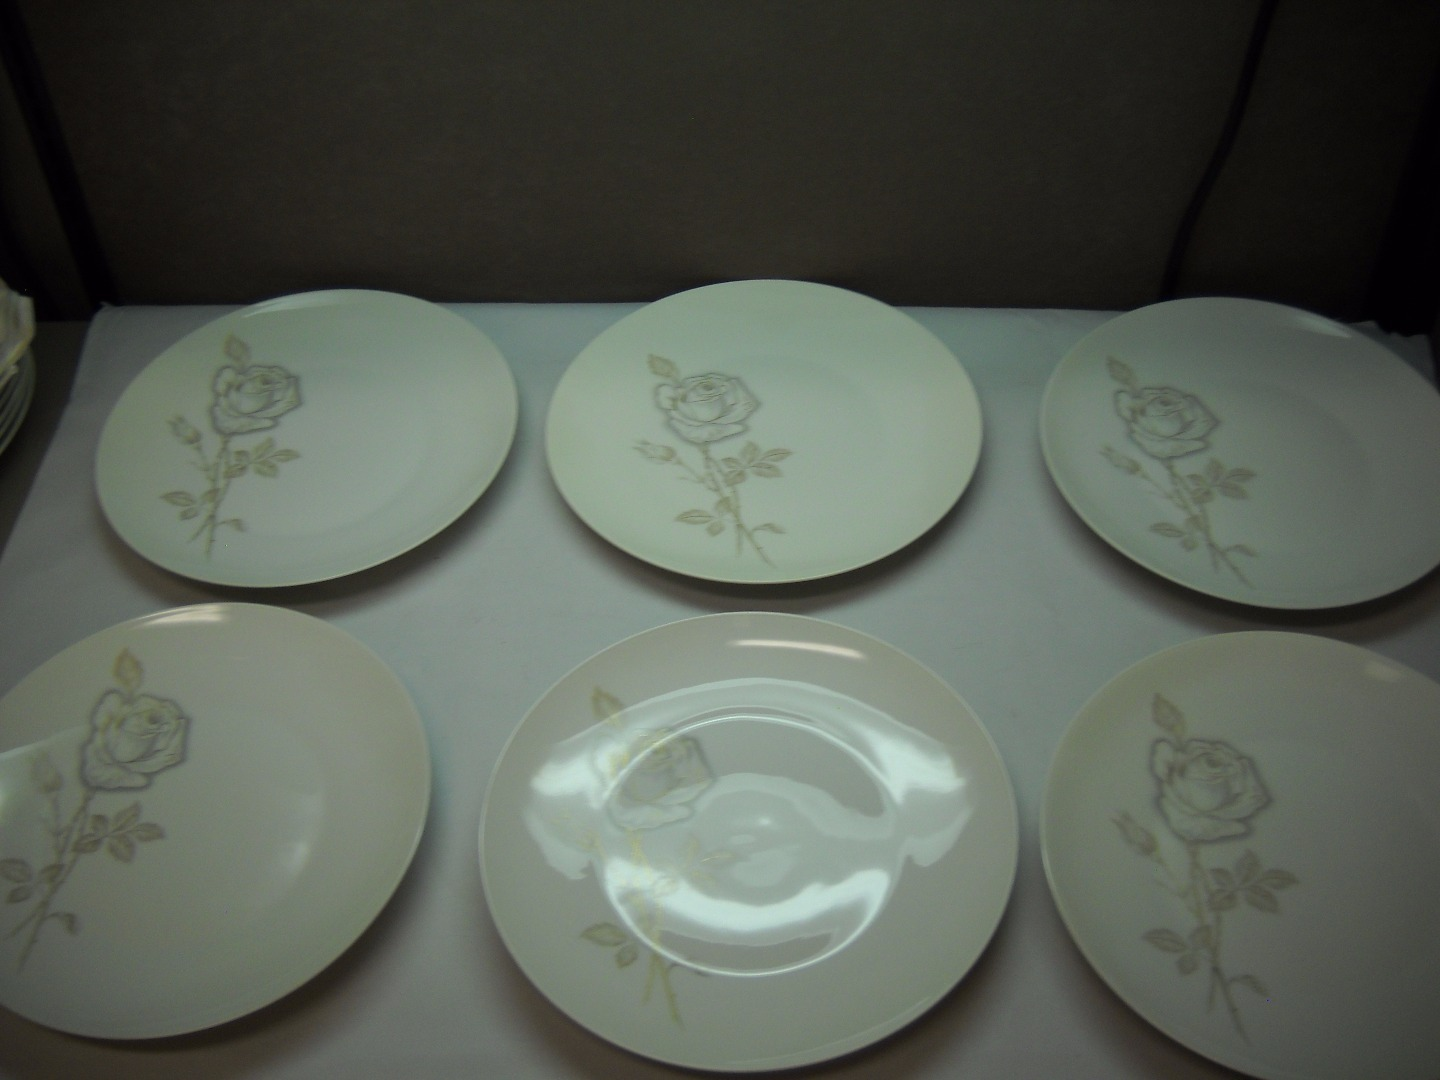 Primary image for SET OF 6 Dinner Plates from ROSENTHAL China with CLASSIC ROSE Pattern LOEWY